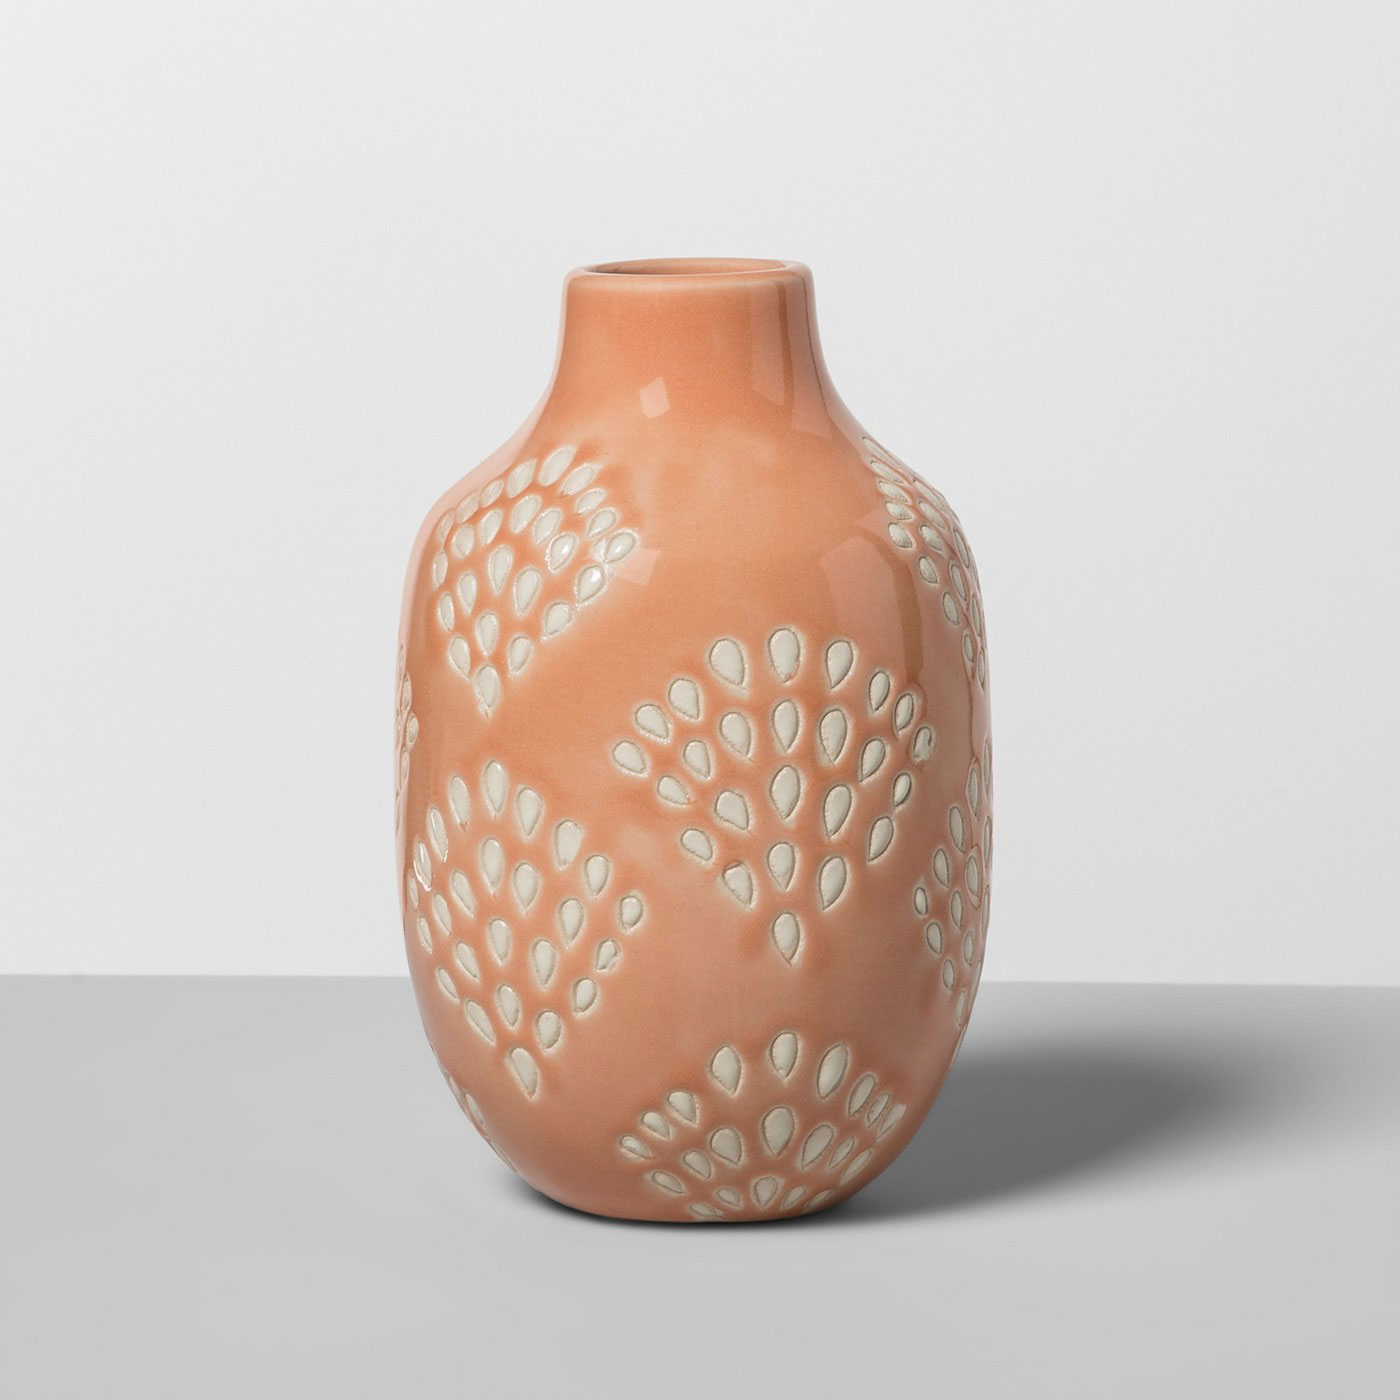 Orange patterned vase